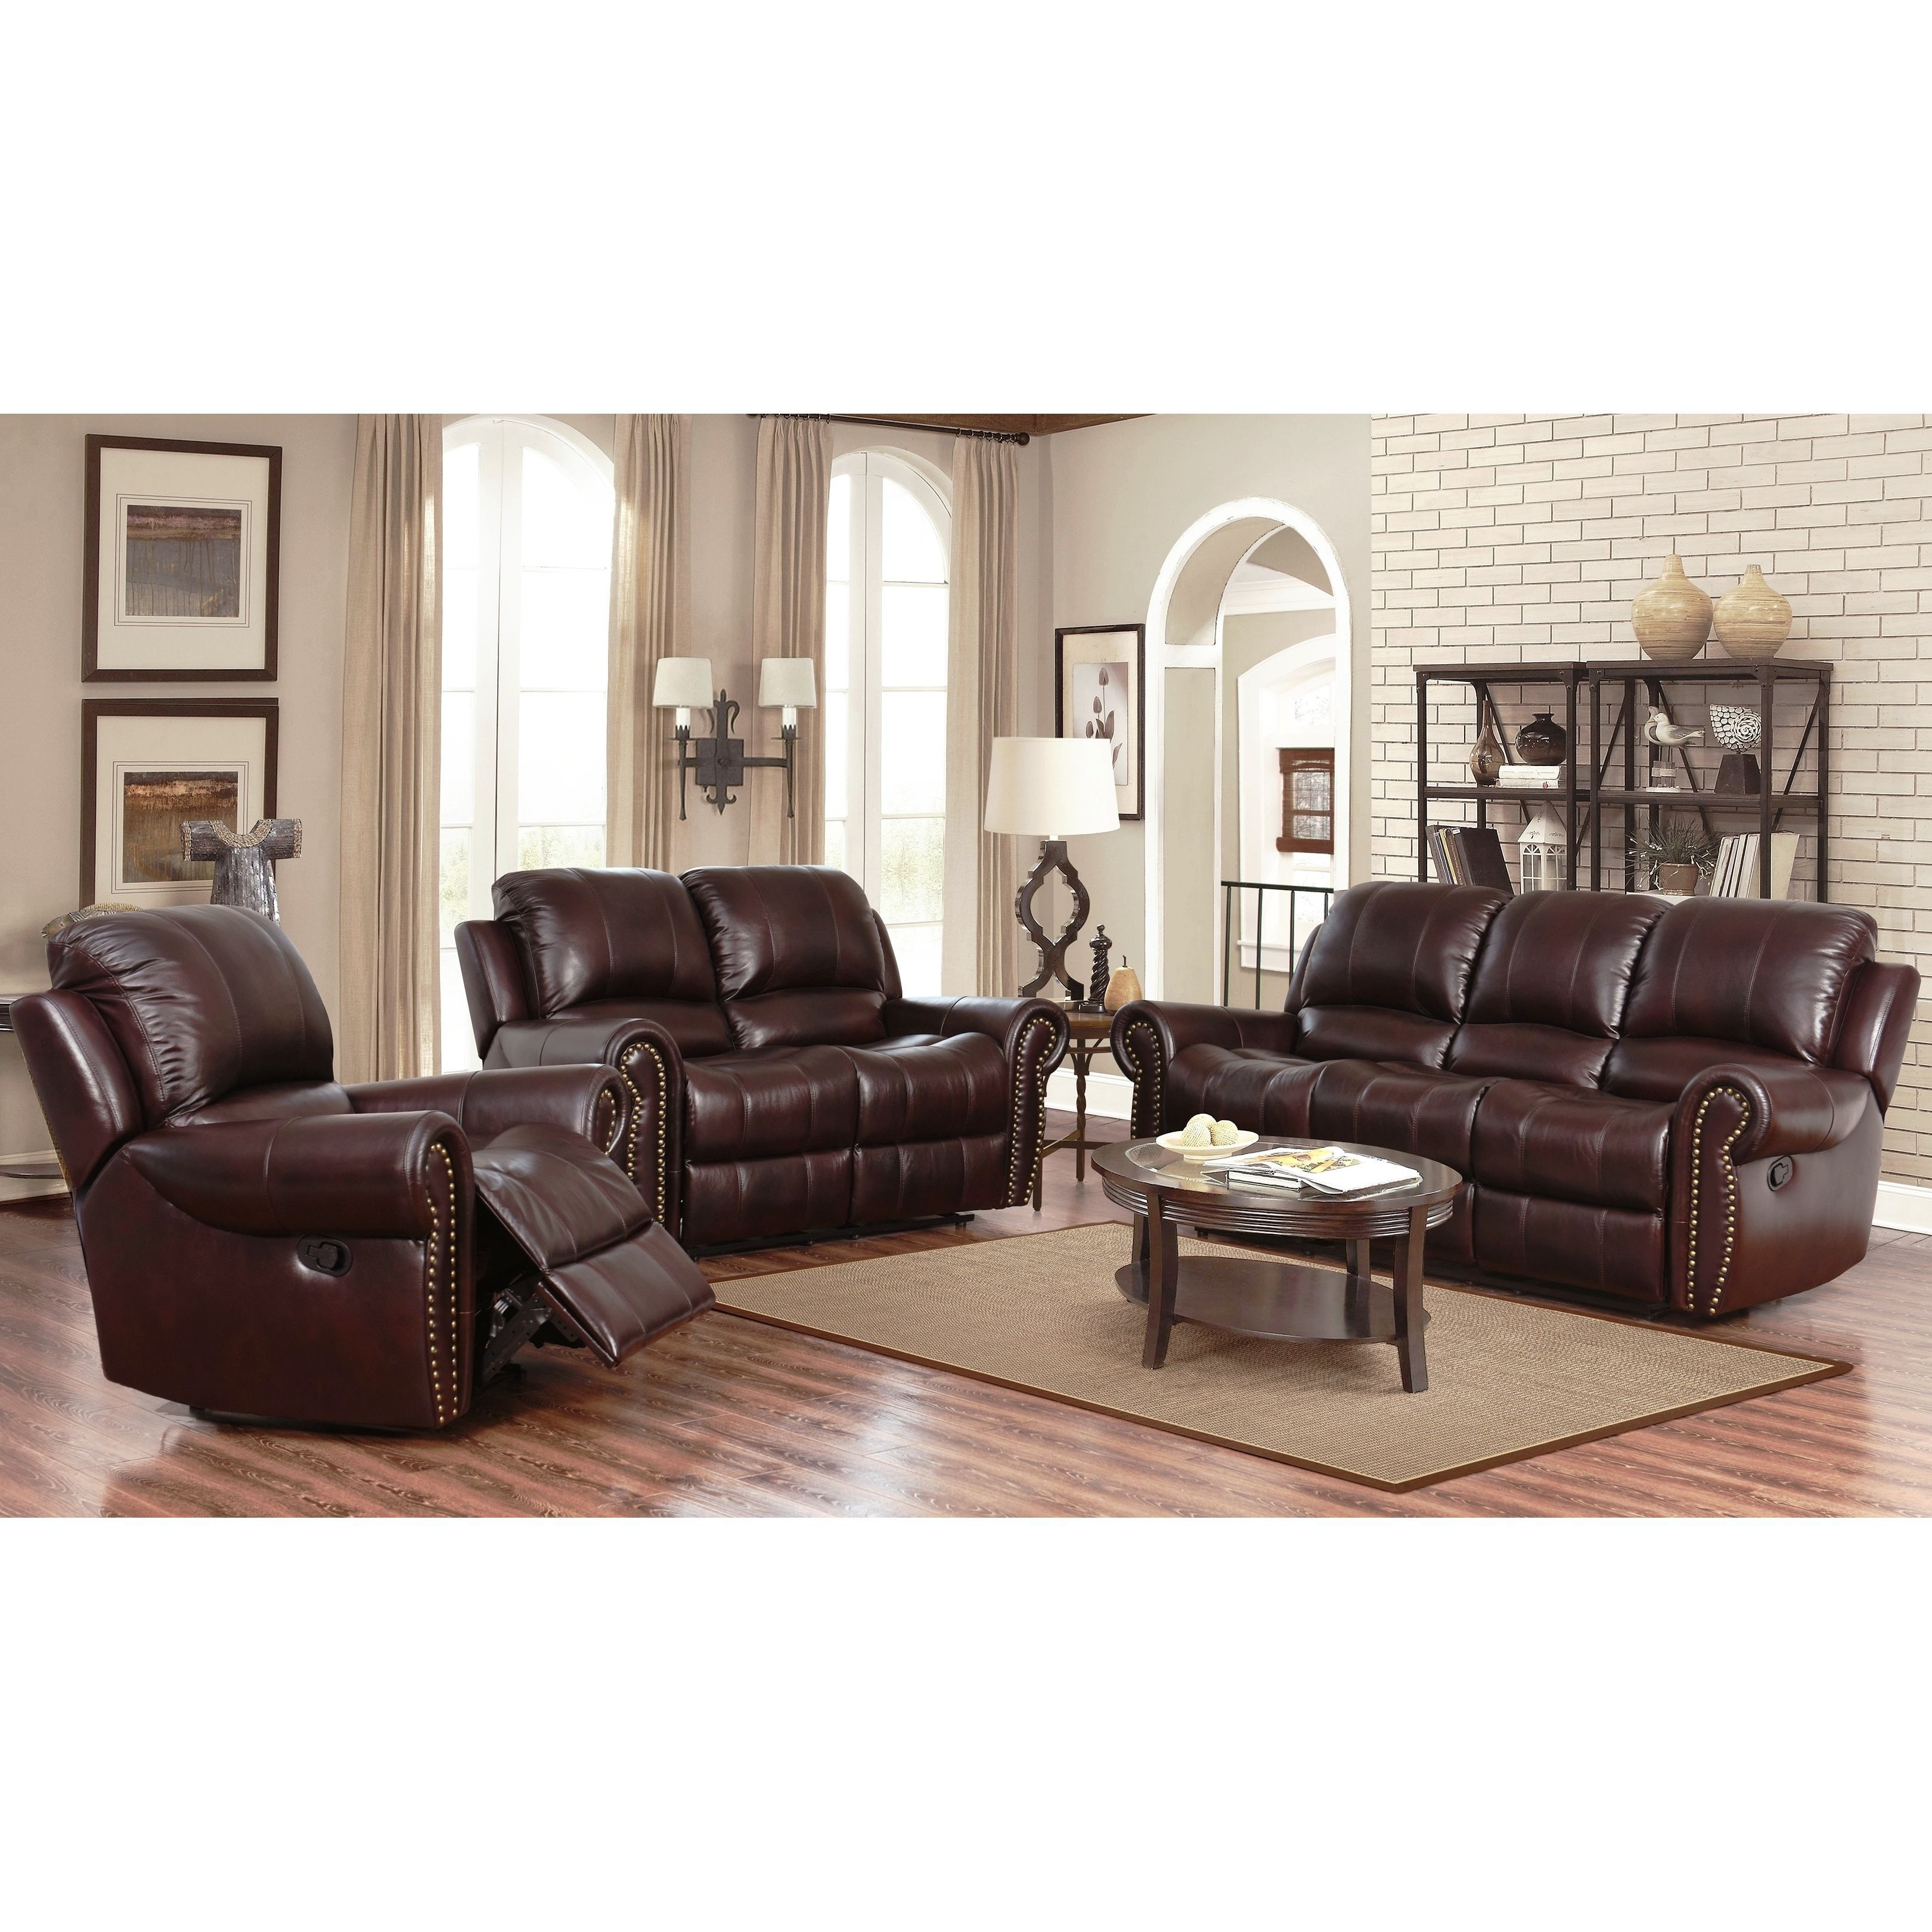 Abson Broadway Top Grain Leather Reclining 3 Piece Living pertaining to measurements 3241 X 3241